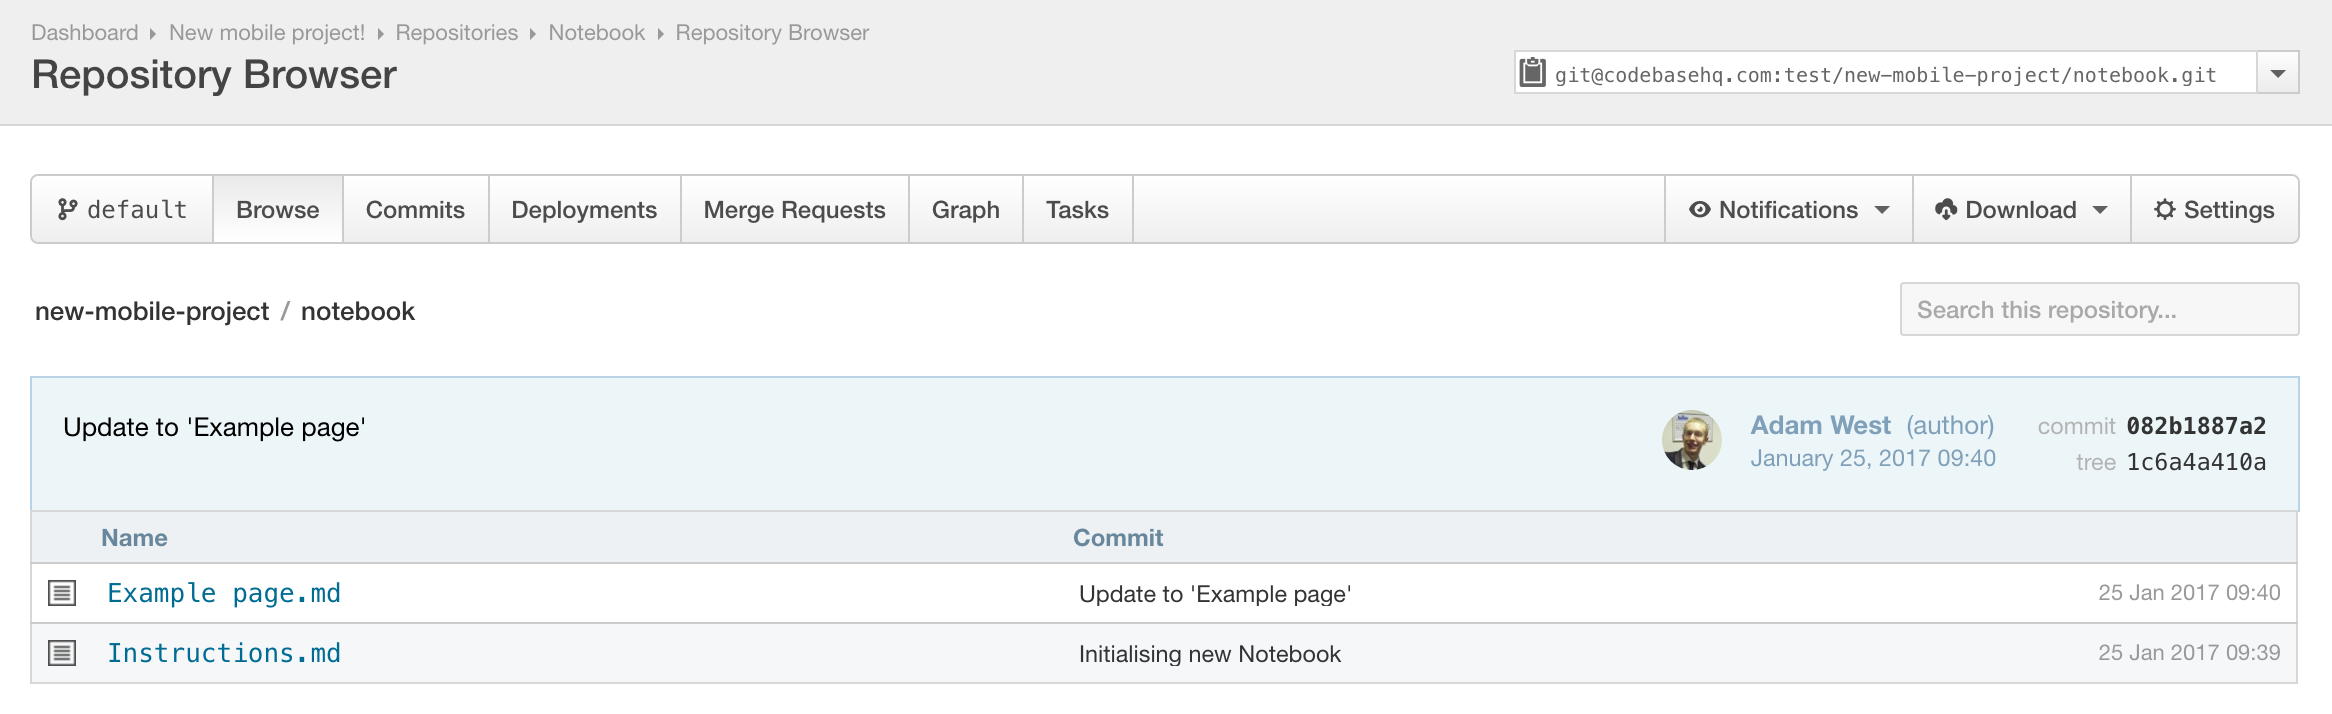 Editing The Notebook Locally Notebook Codebase